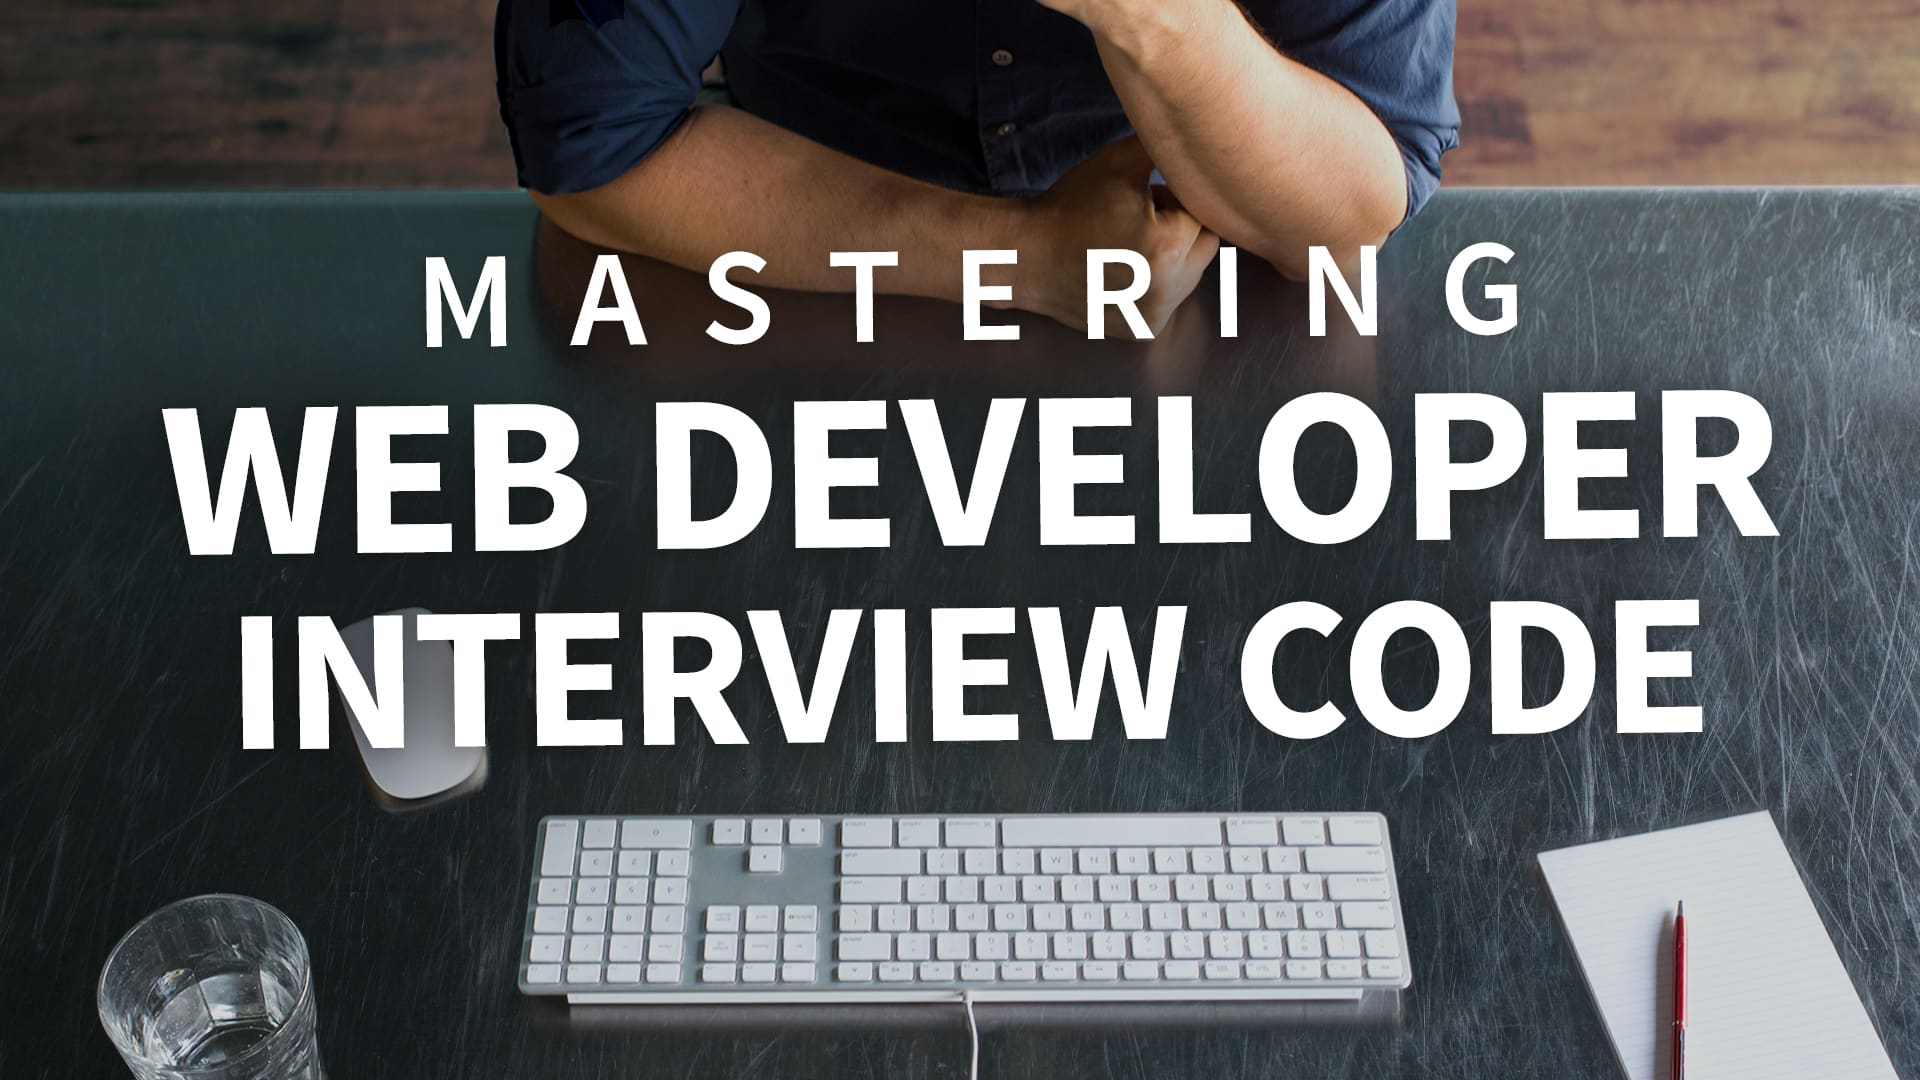 [Lynda] Mastering Web Developer Interview Code